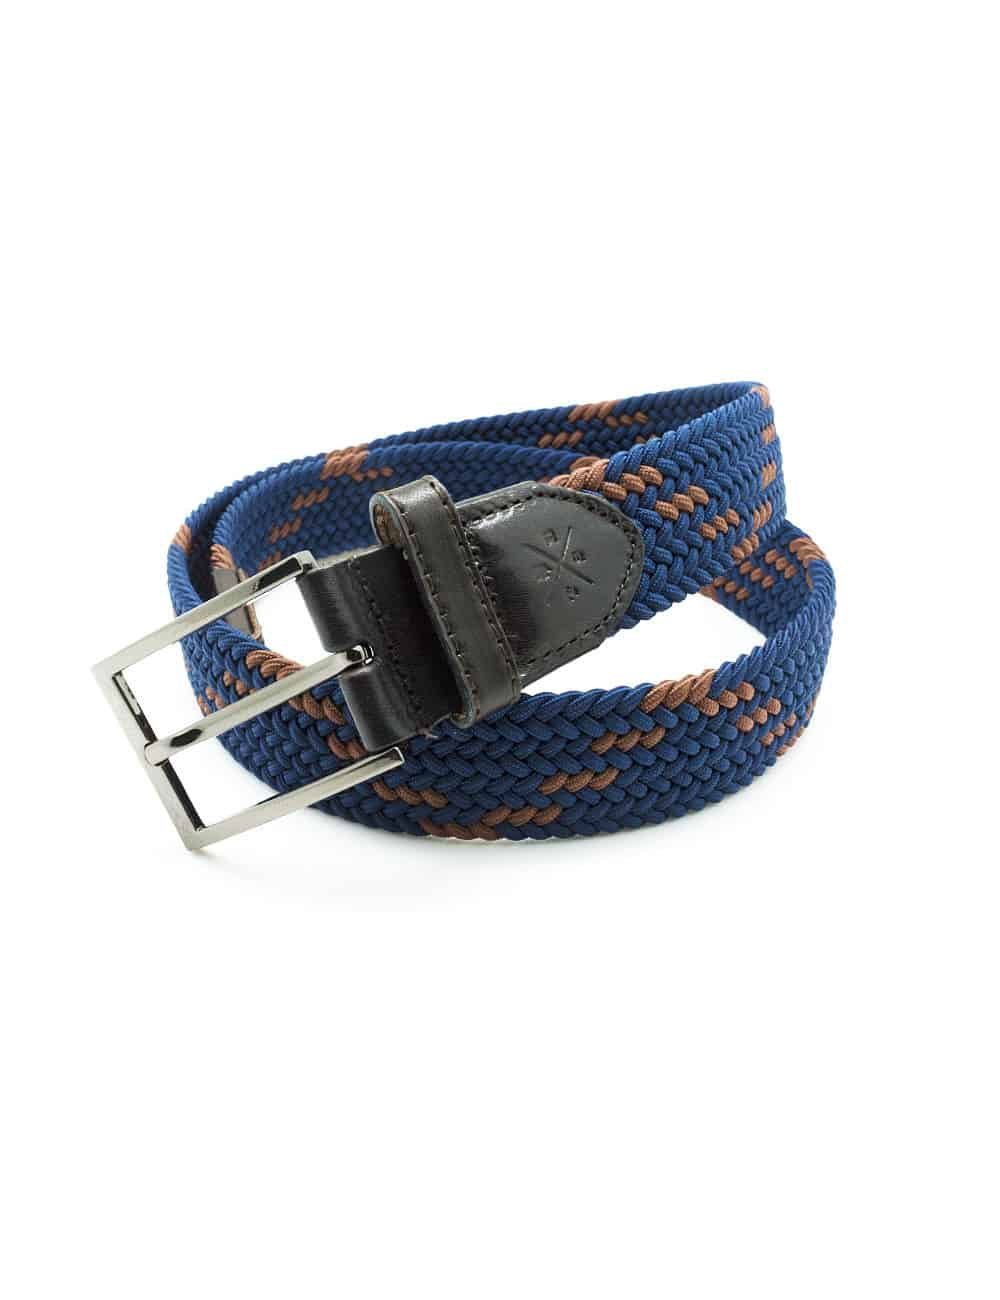 Navy / Brown Webbing Belt NLB22.8